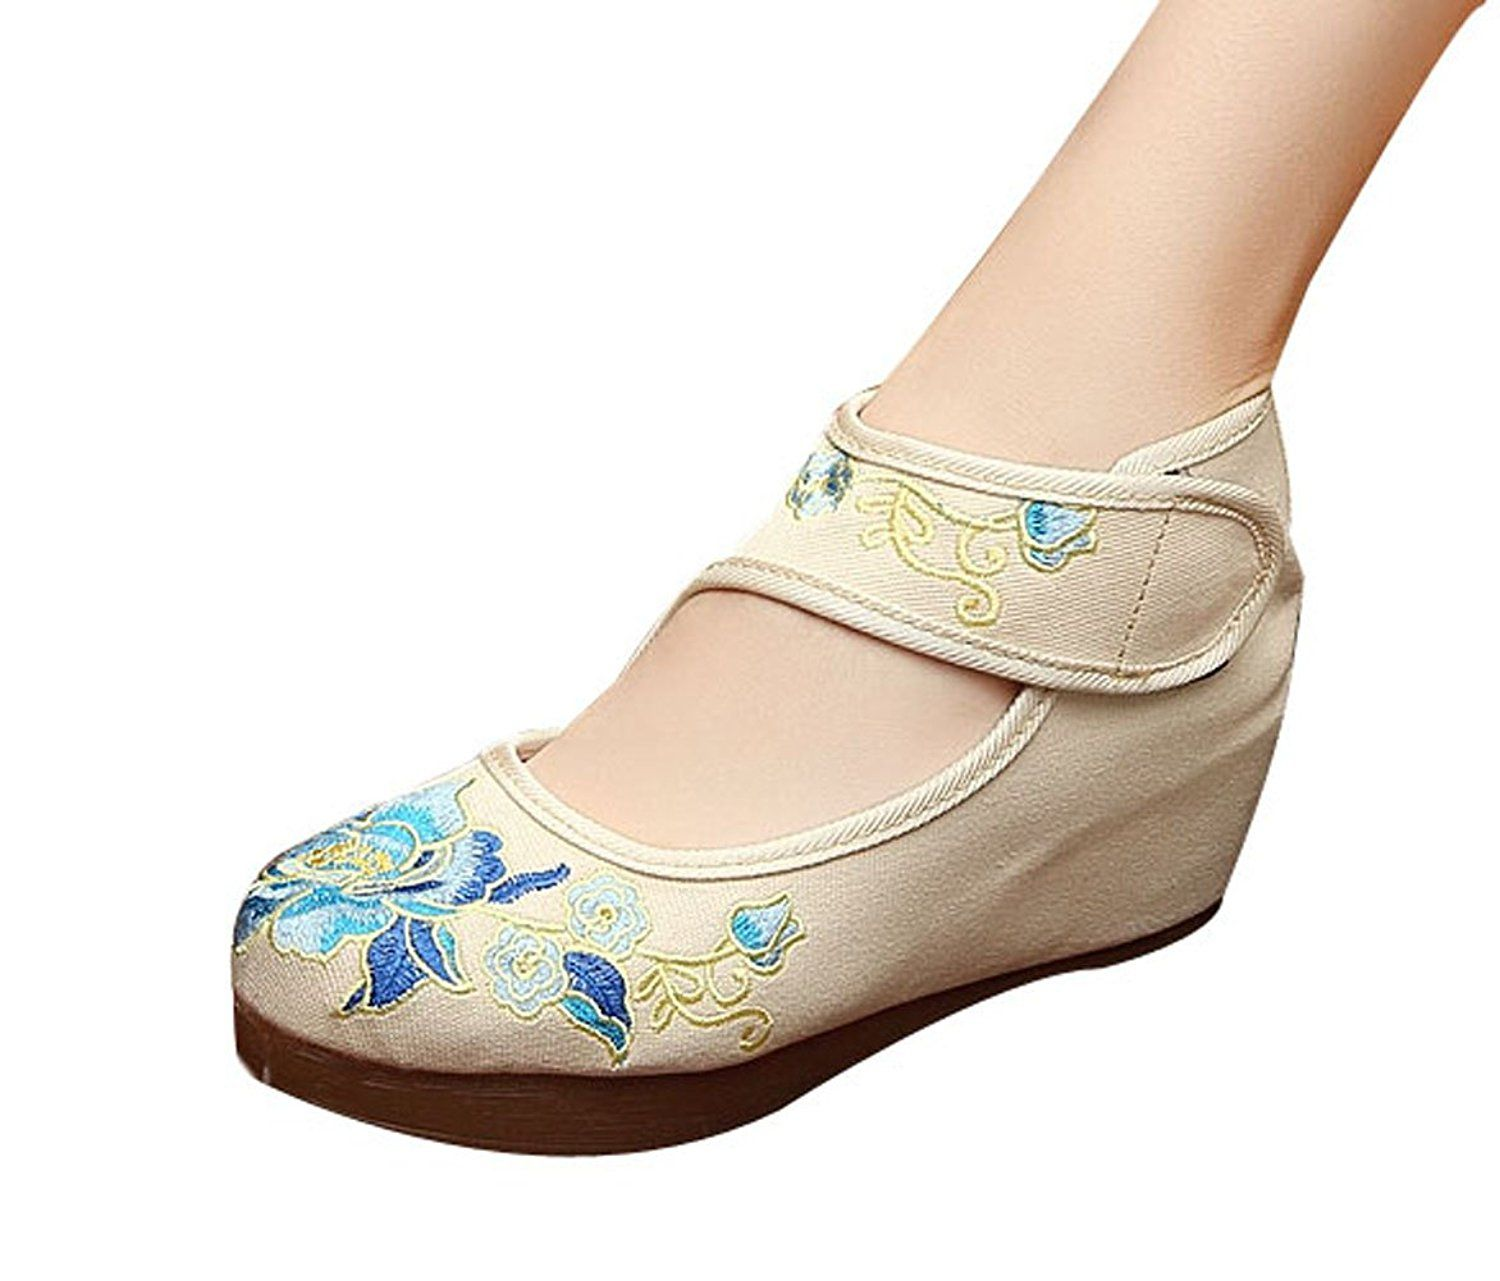 Womens Embroidery Floral Exotic Platform Wedges